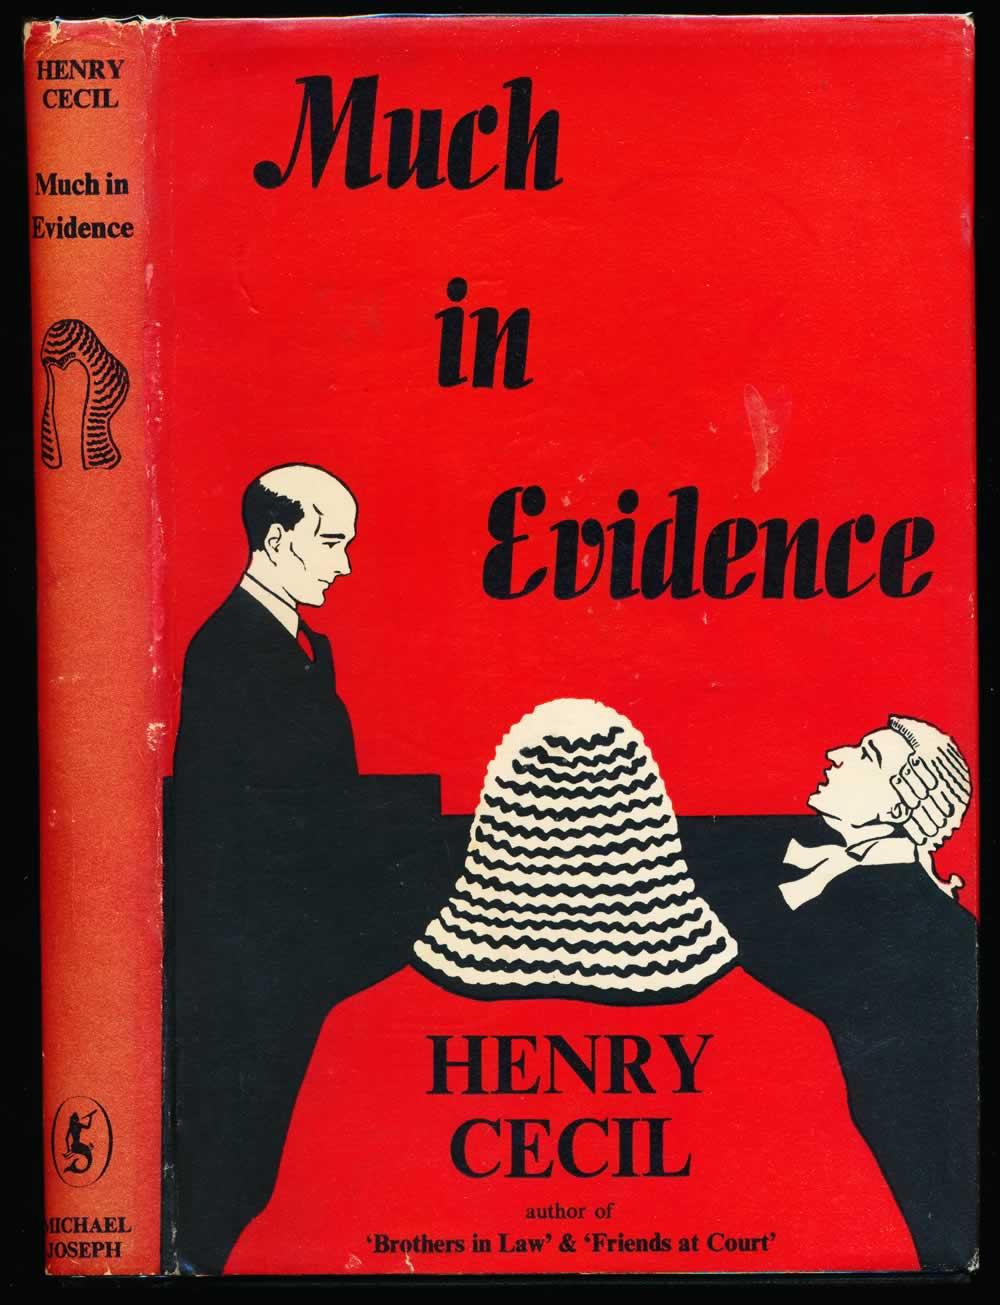 Image result for henry cecil crime books